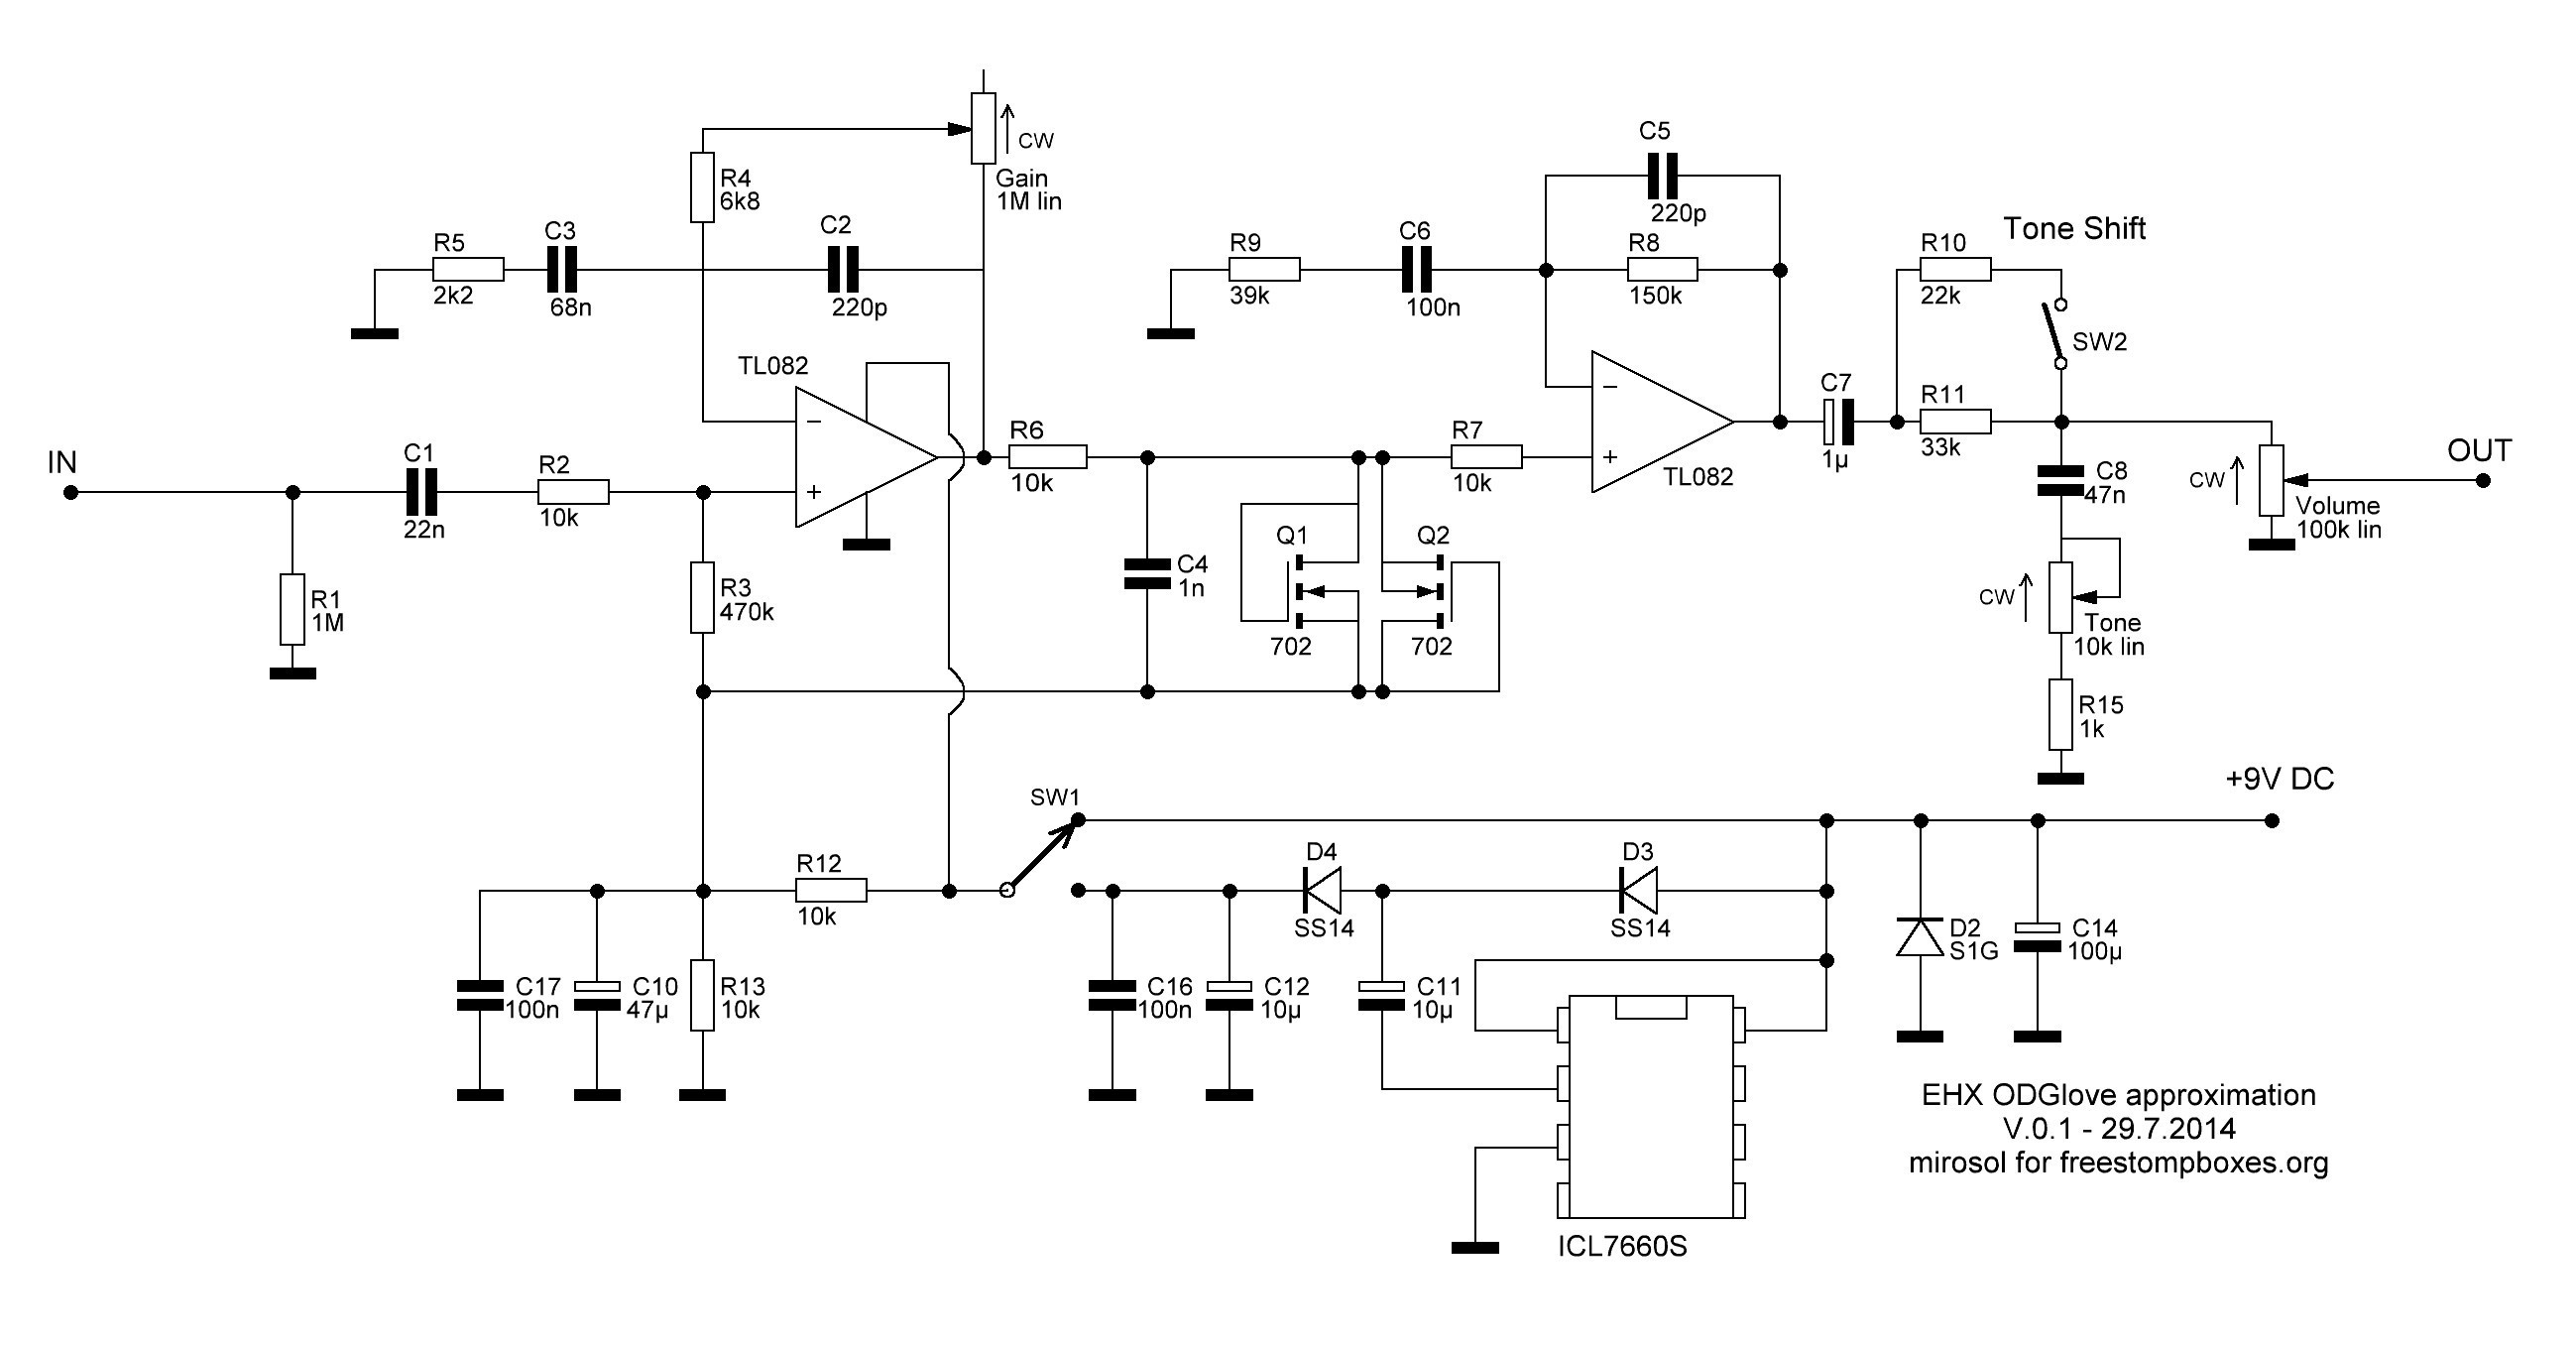 Bass Guitar Wiring Diagram Schematics Fresh Perf And Pcb Effects Layouts Electro Harmonix Od Glove